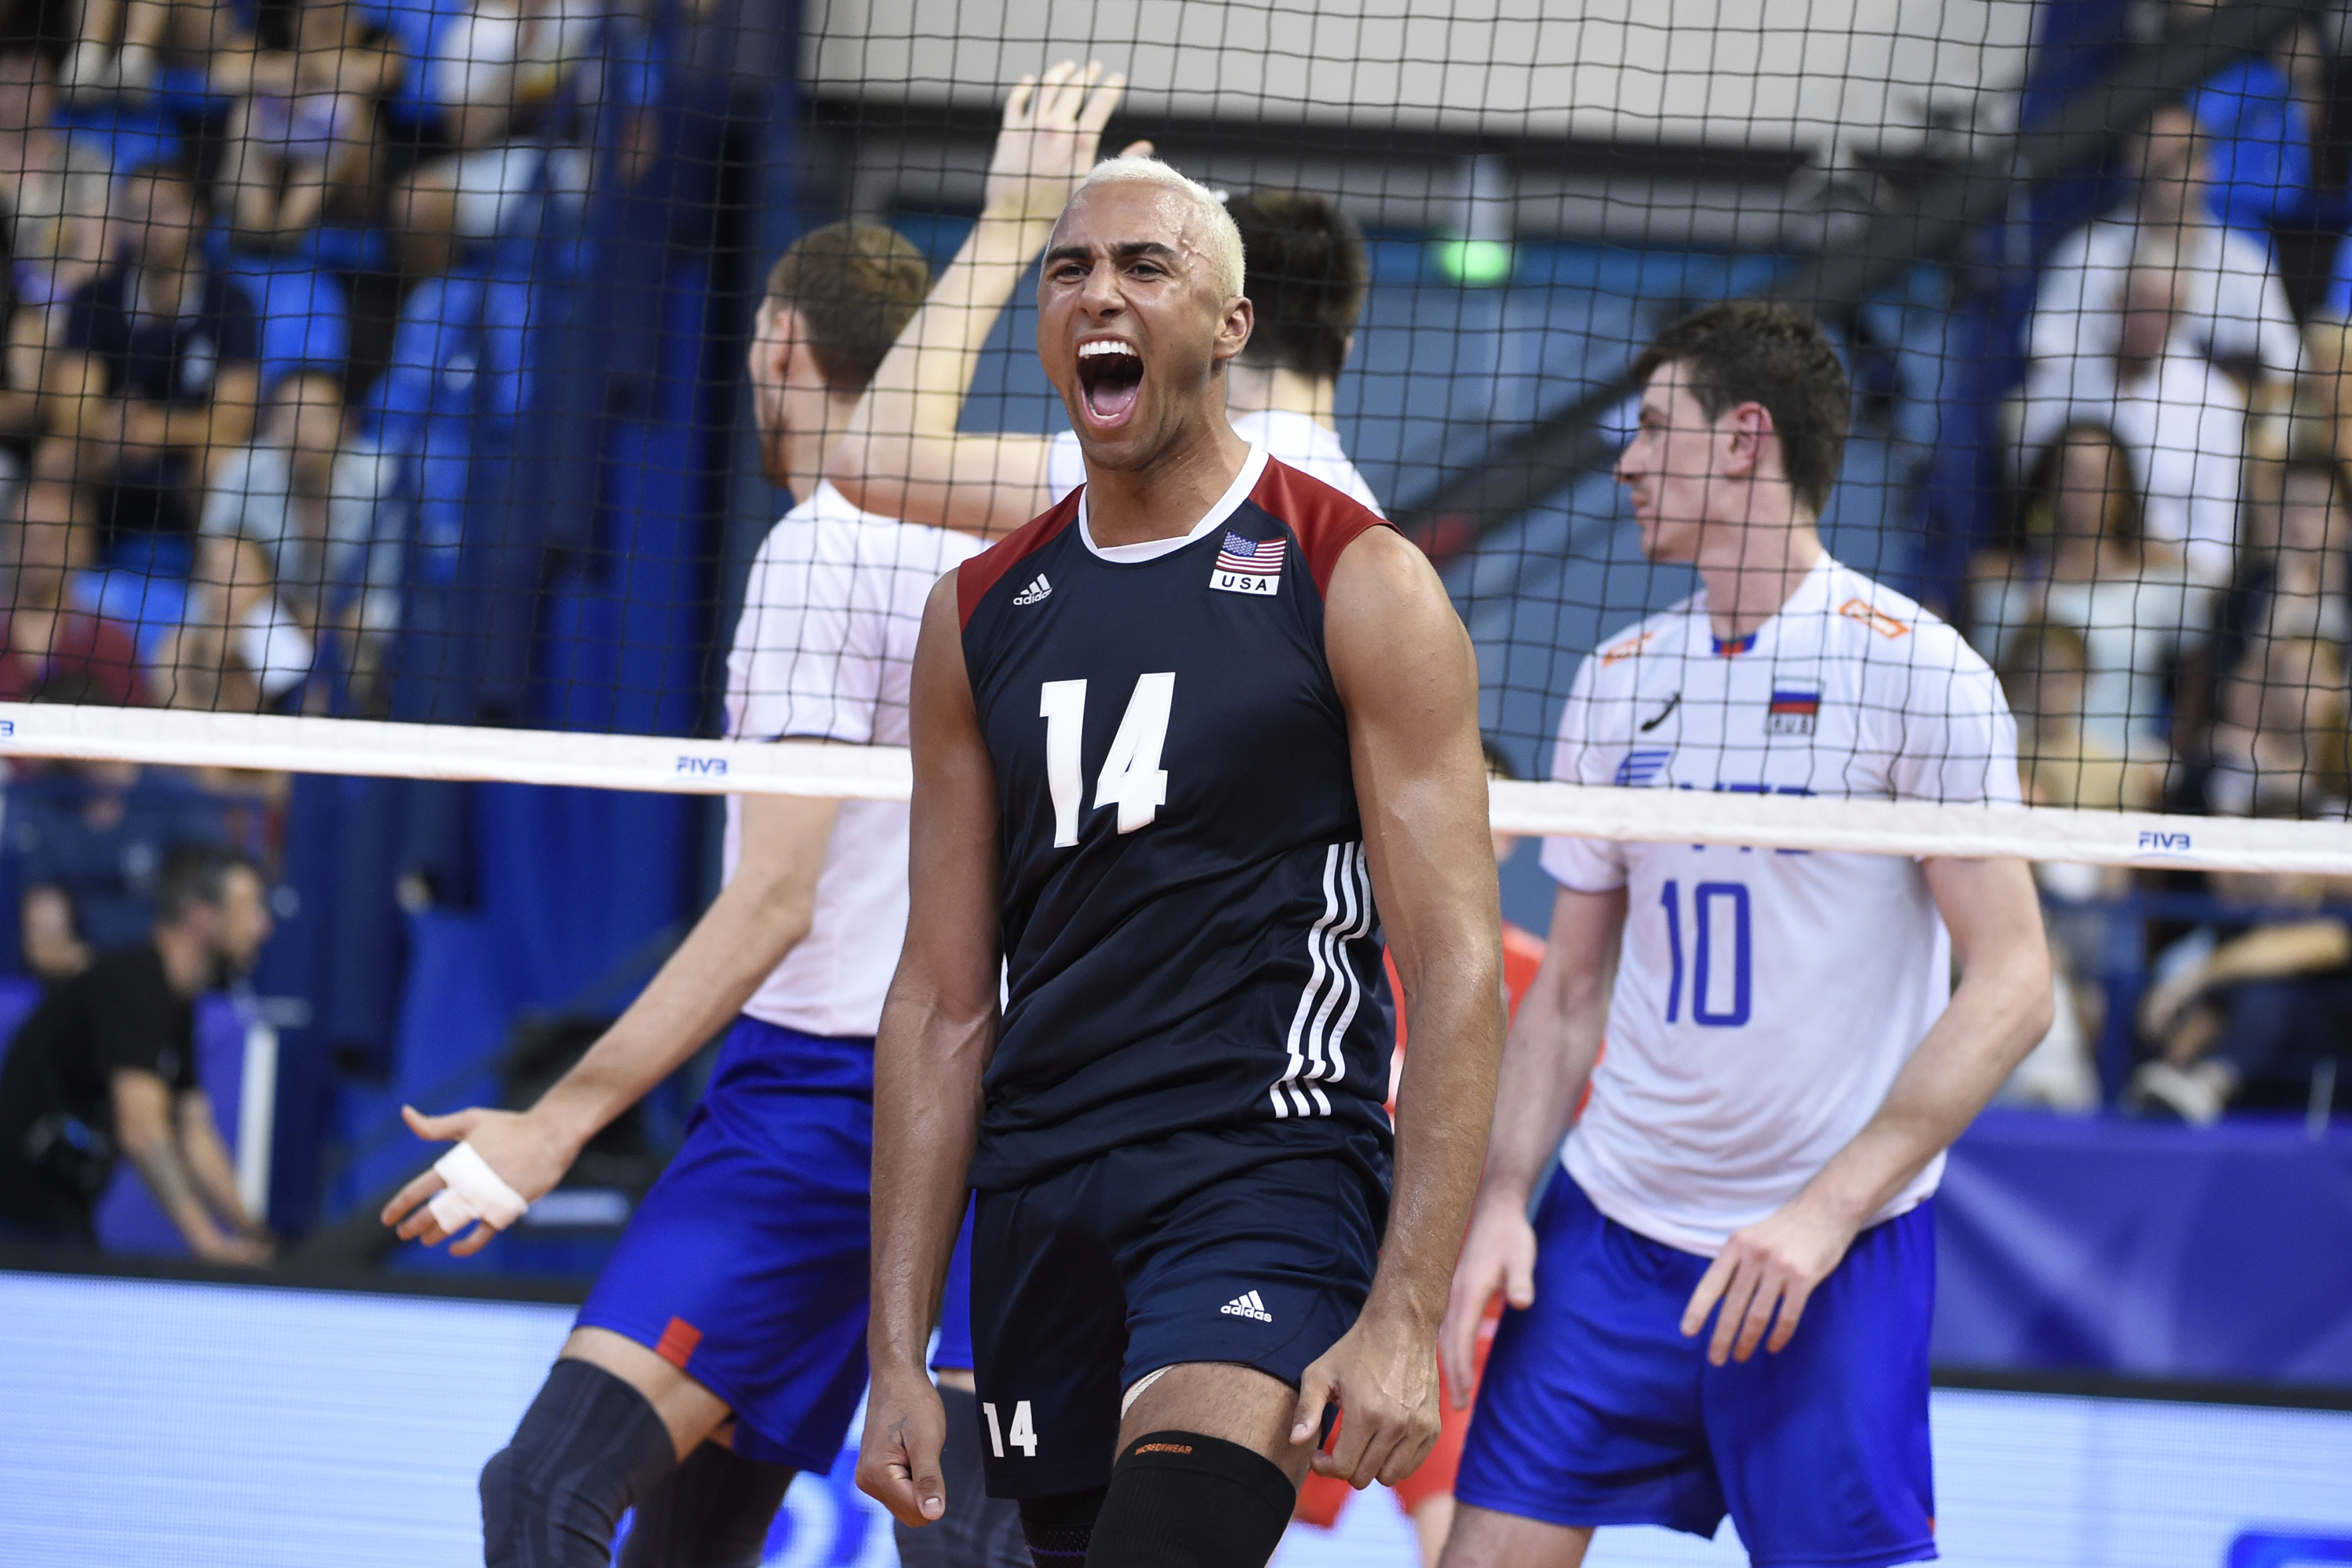 Fivb World League 2017 News Detail Best Players Usa S Patch Sets Personal Scoring Mark In Win Against Iran Fivb Volleyball World League 2017